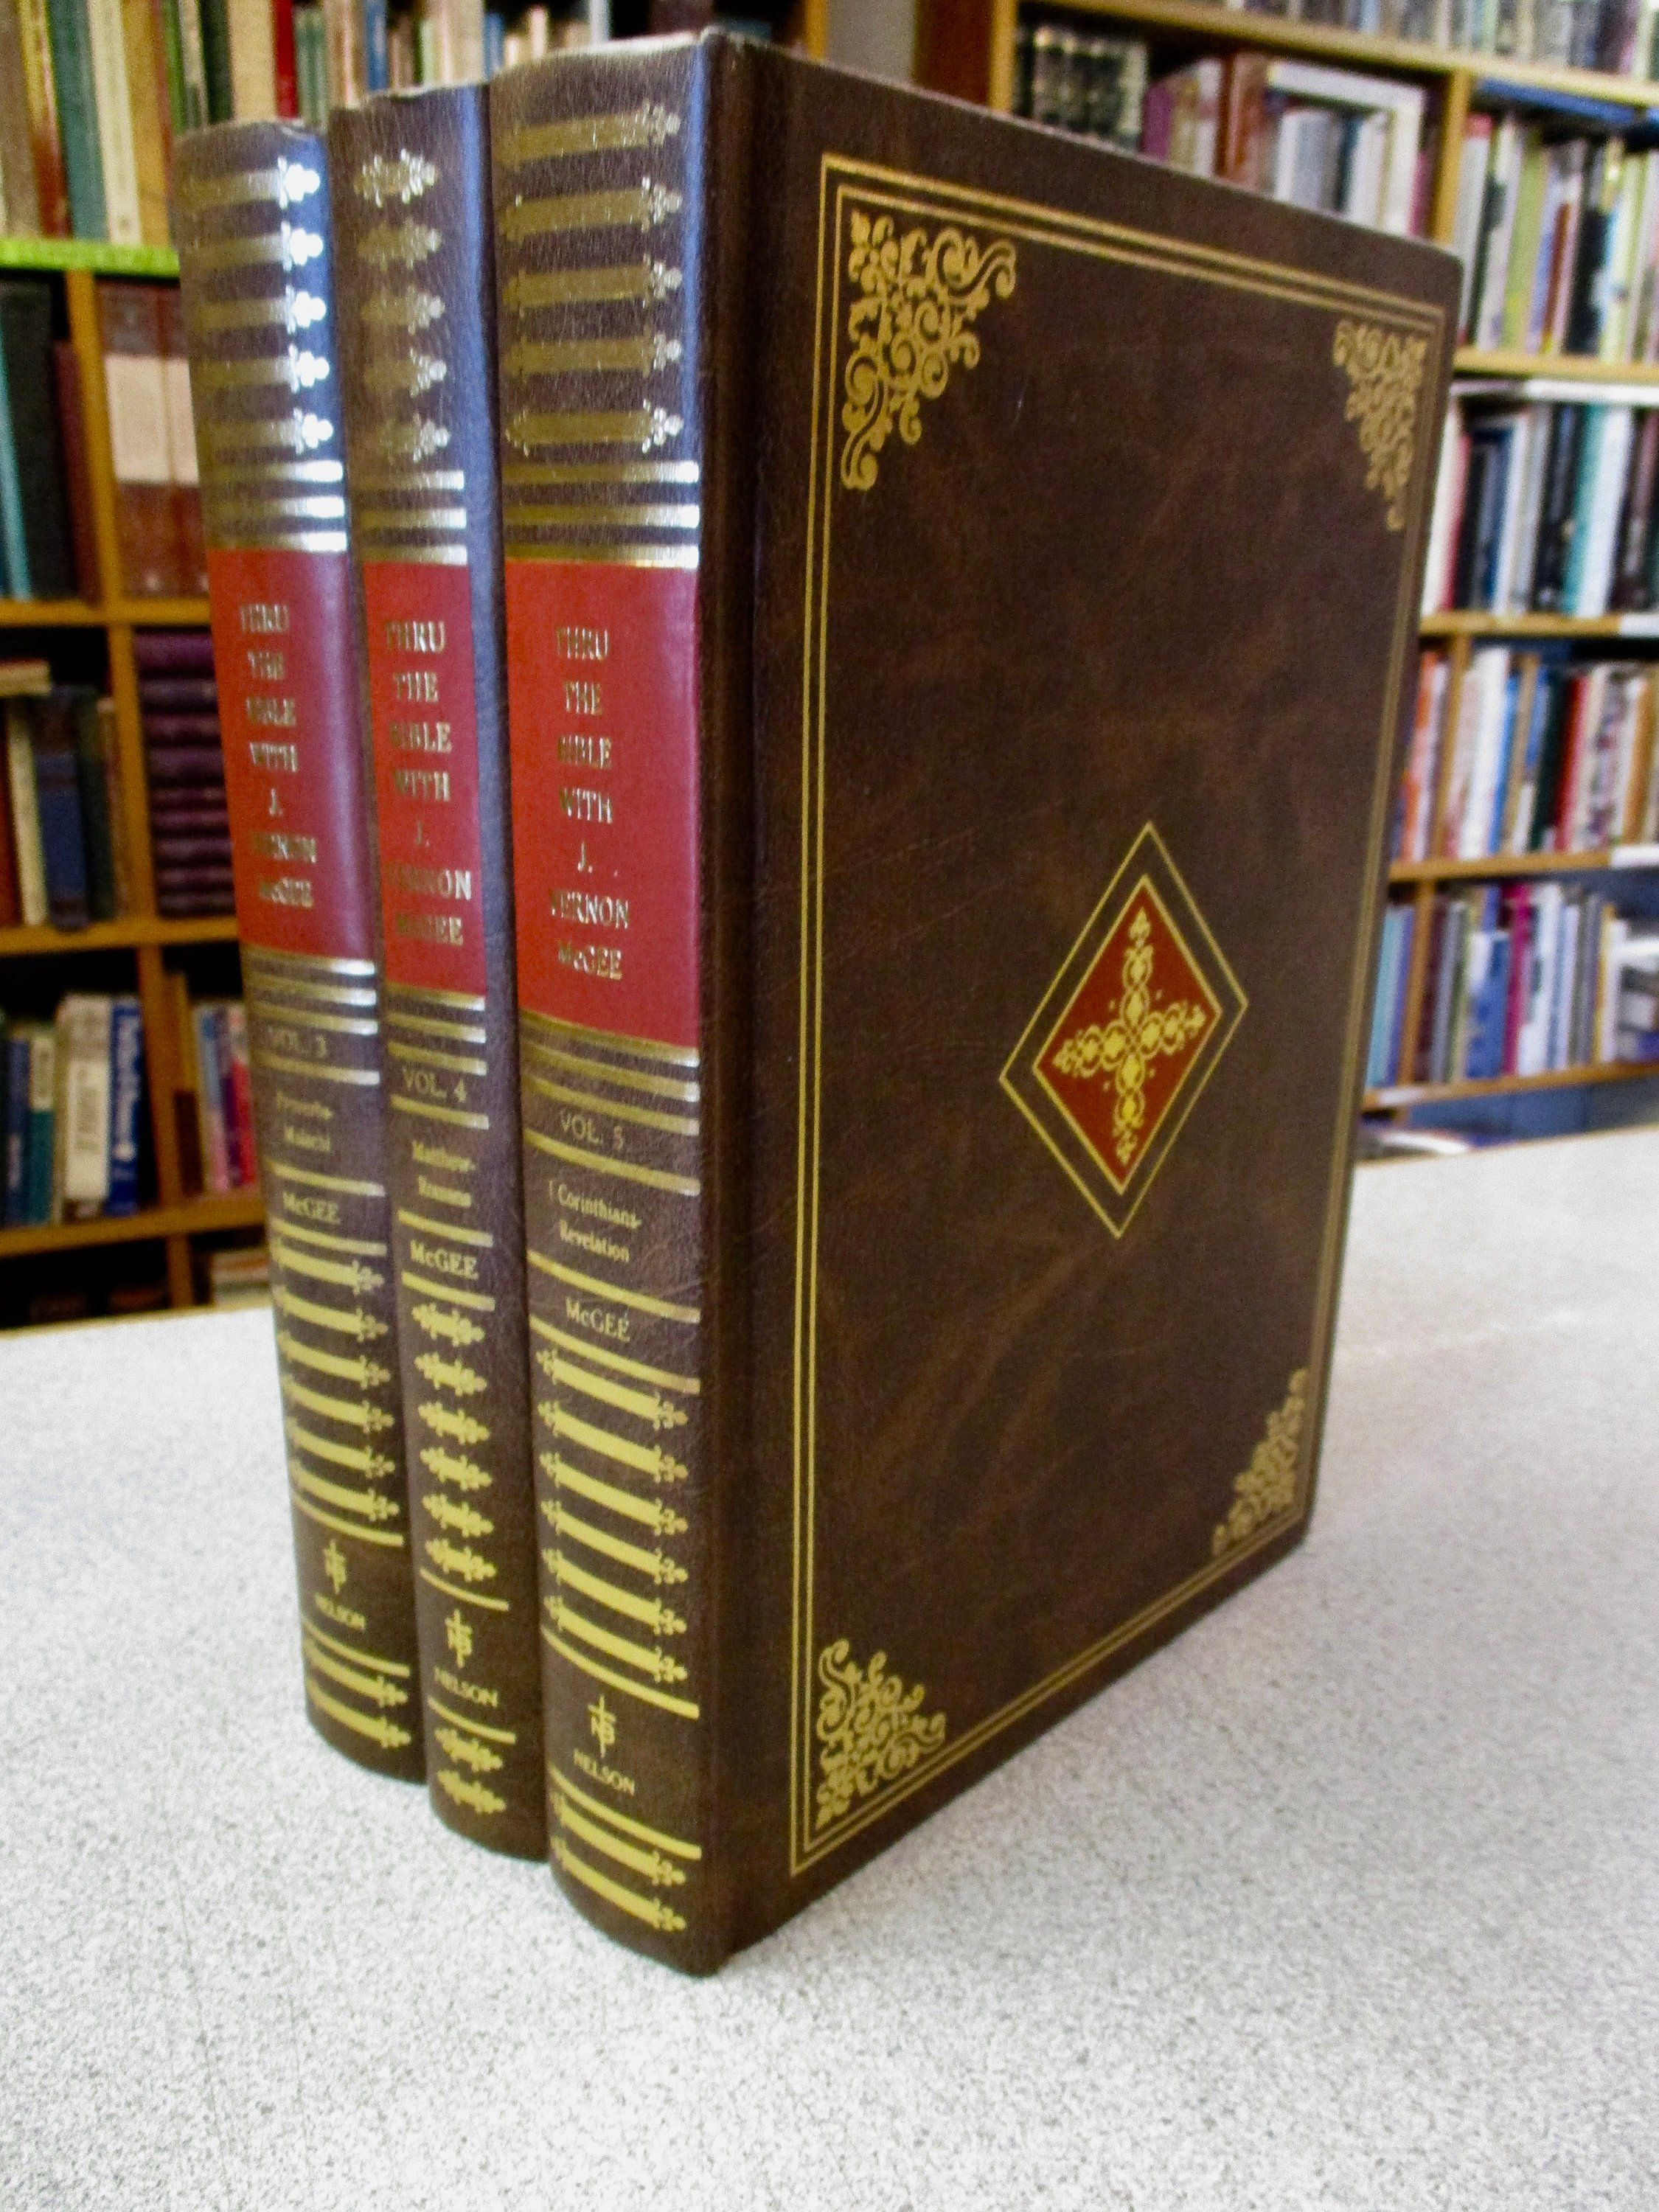 J Veron Mcgee Commentary Set Volumes 4 5 6 Thru The Bible Hardcover Set Of 3 Old Testament New Testament Chris Thru The Bible Christian Books Hardcover